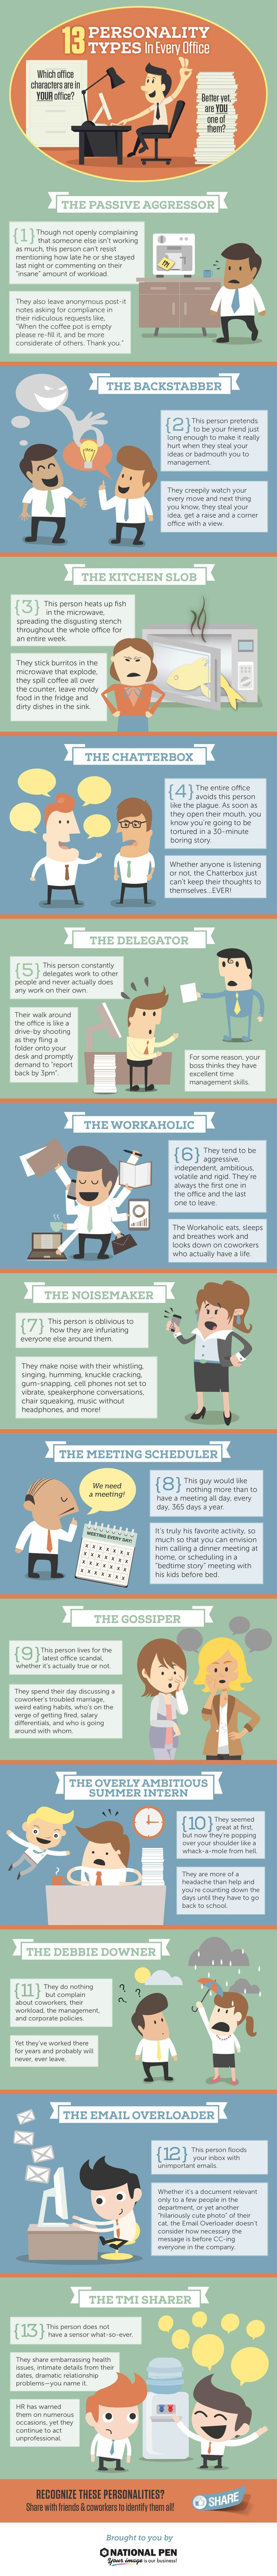 13 Personality Types Found In Almost Every Busy Office [Infographic]